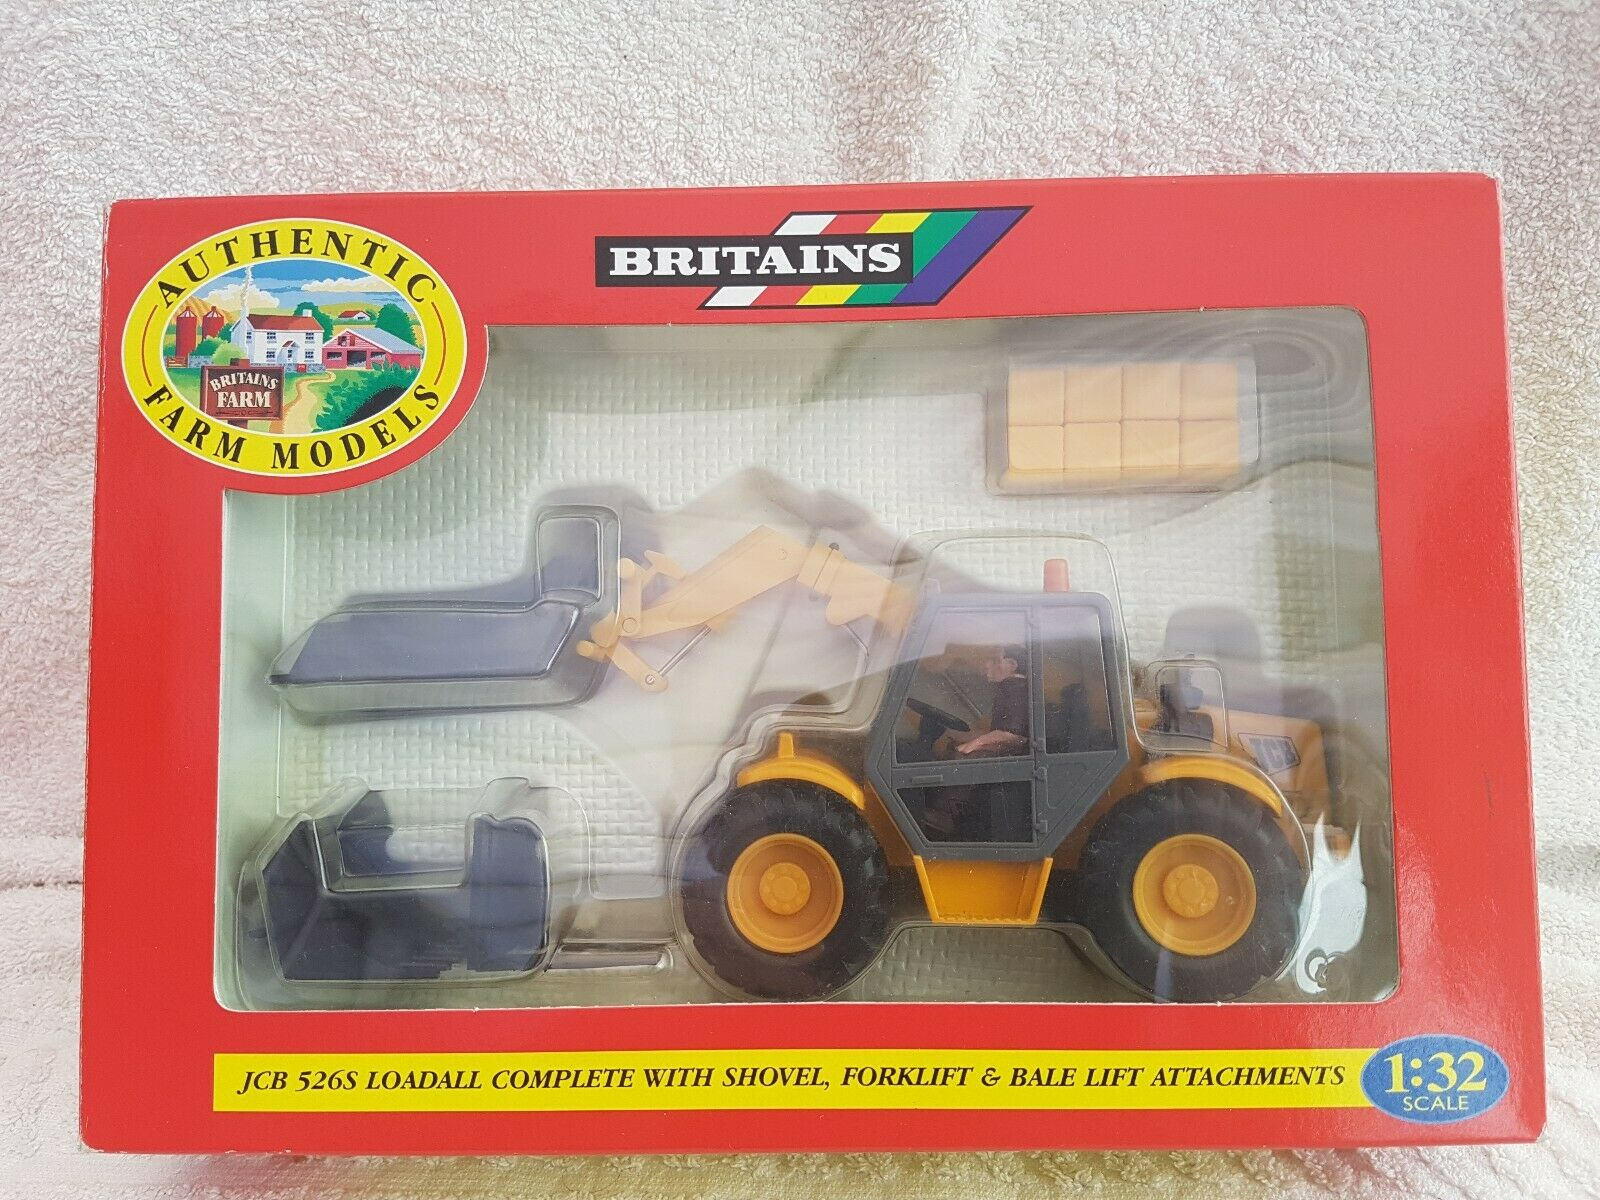 Britains 1 32 9460 JCB 526S Loadall With Shovel Forklift & Bale AttachSiets